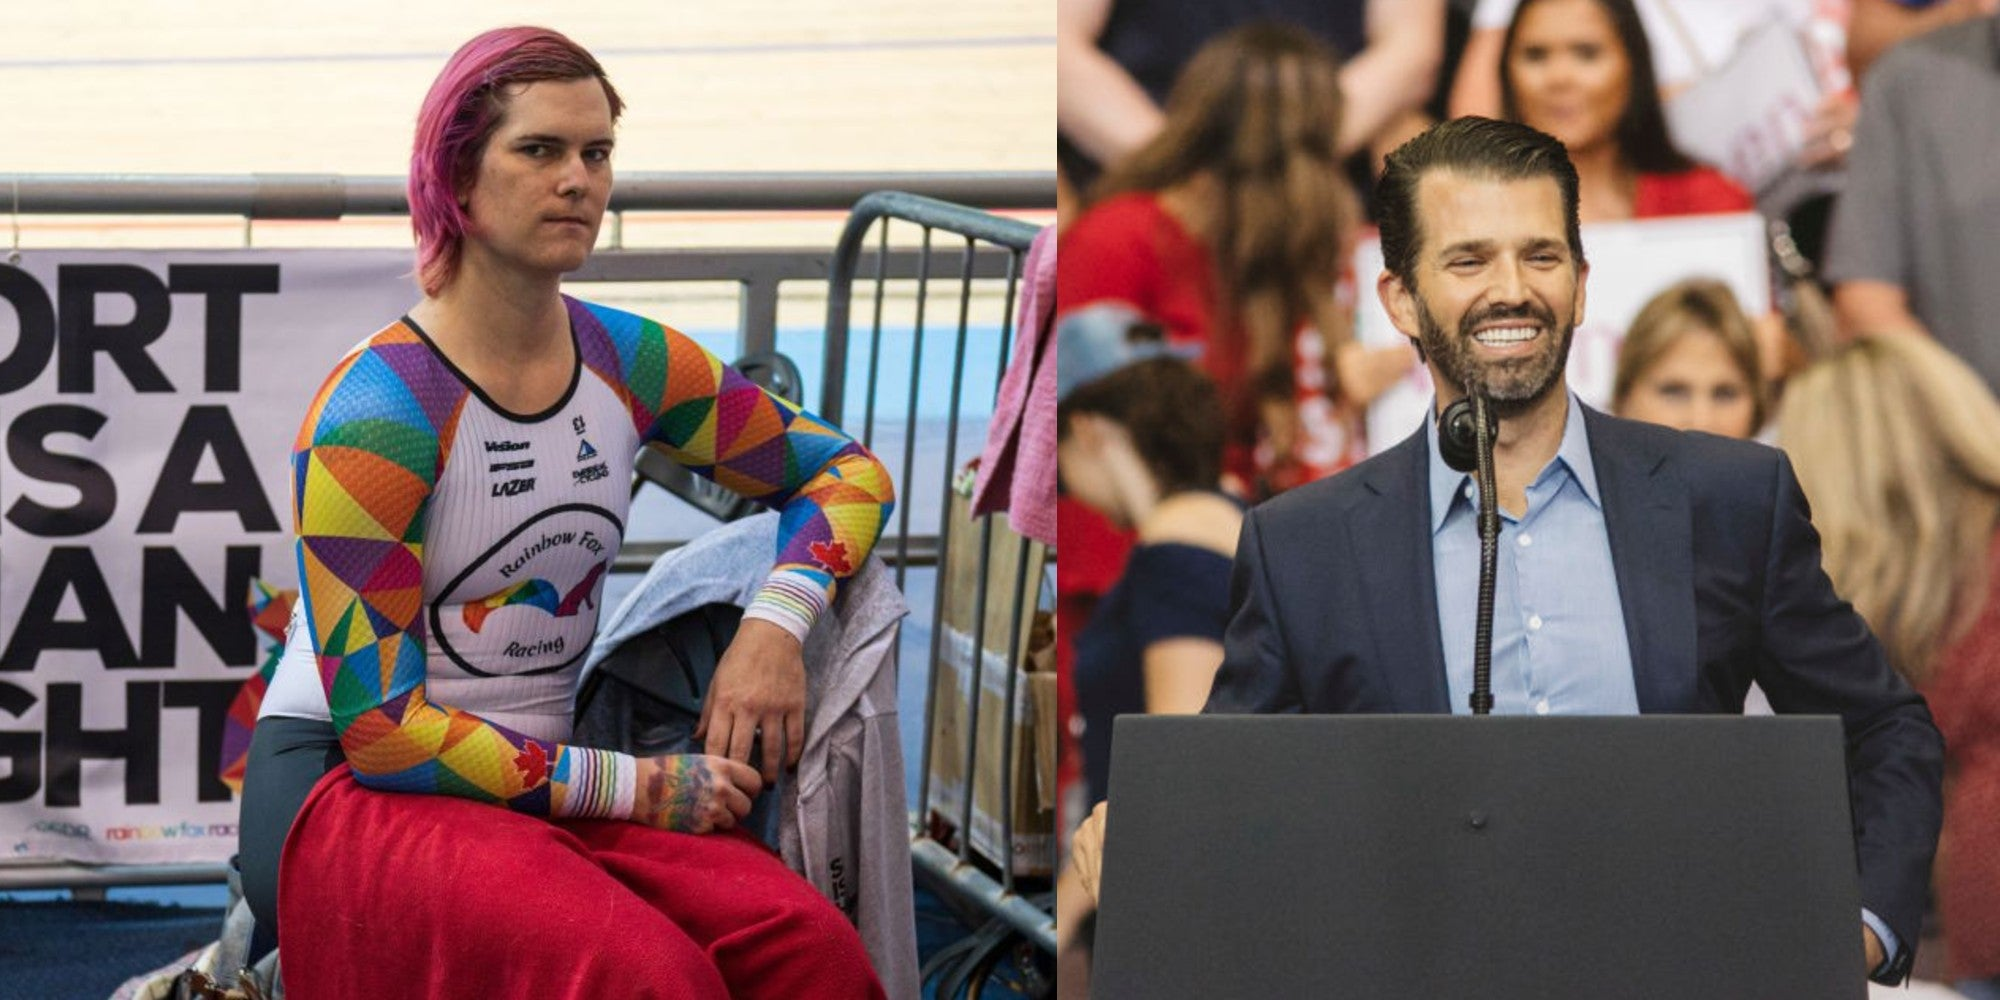 Transphobic comments from Trump Jr led to a champion cyclist receiving death threats